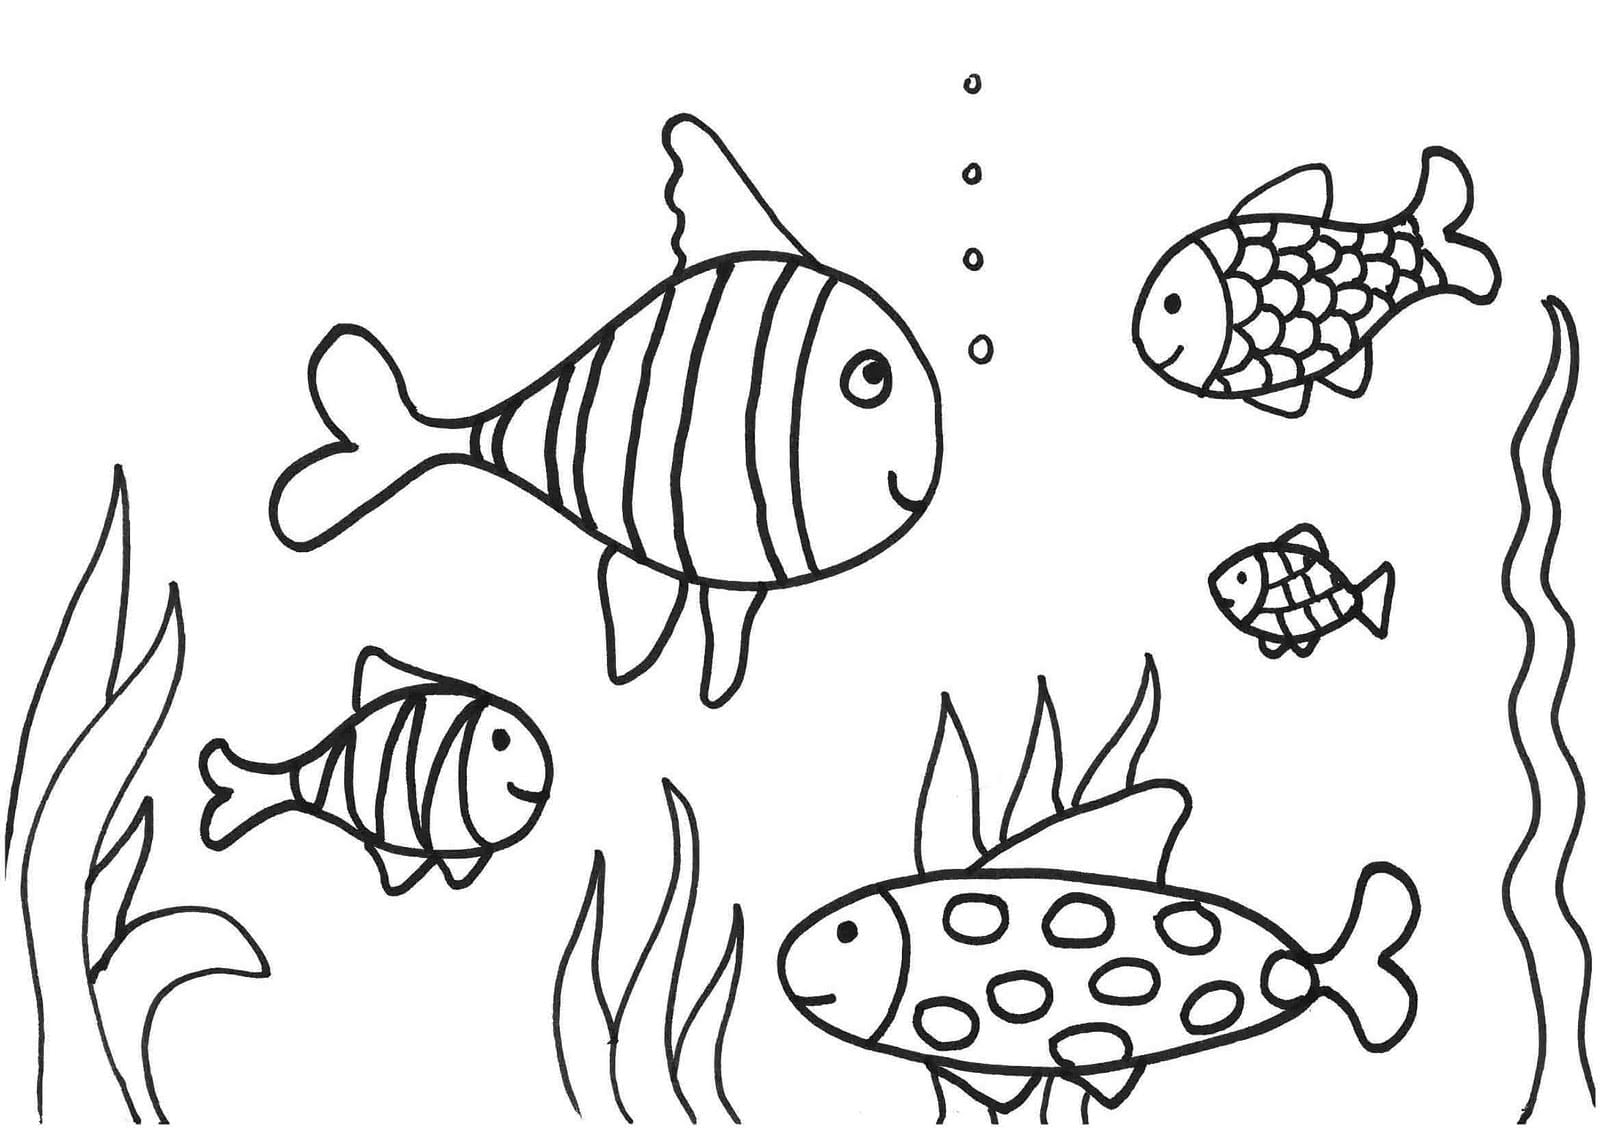 Fish Coloring Pages Underwater Coloringstar Best Of Childlife Me